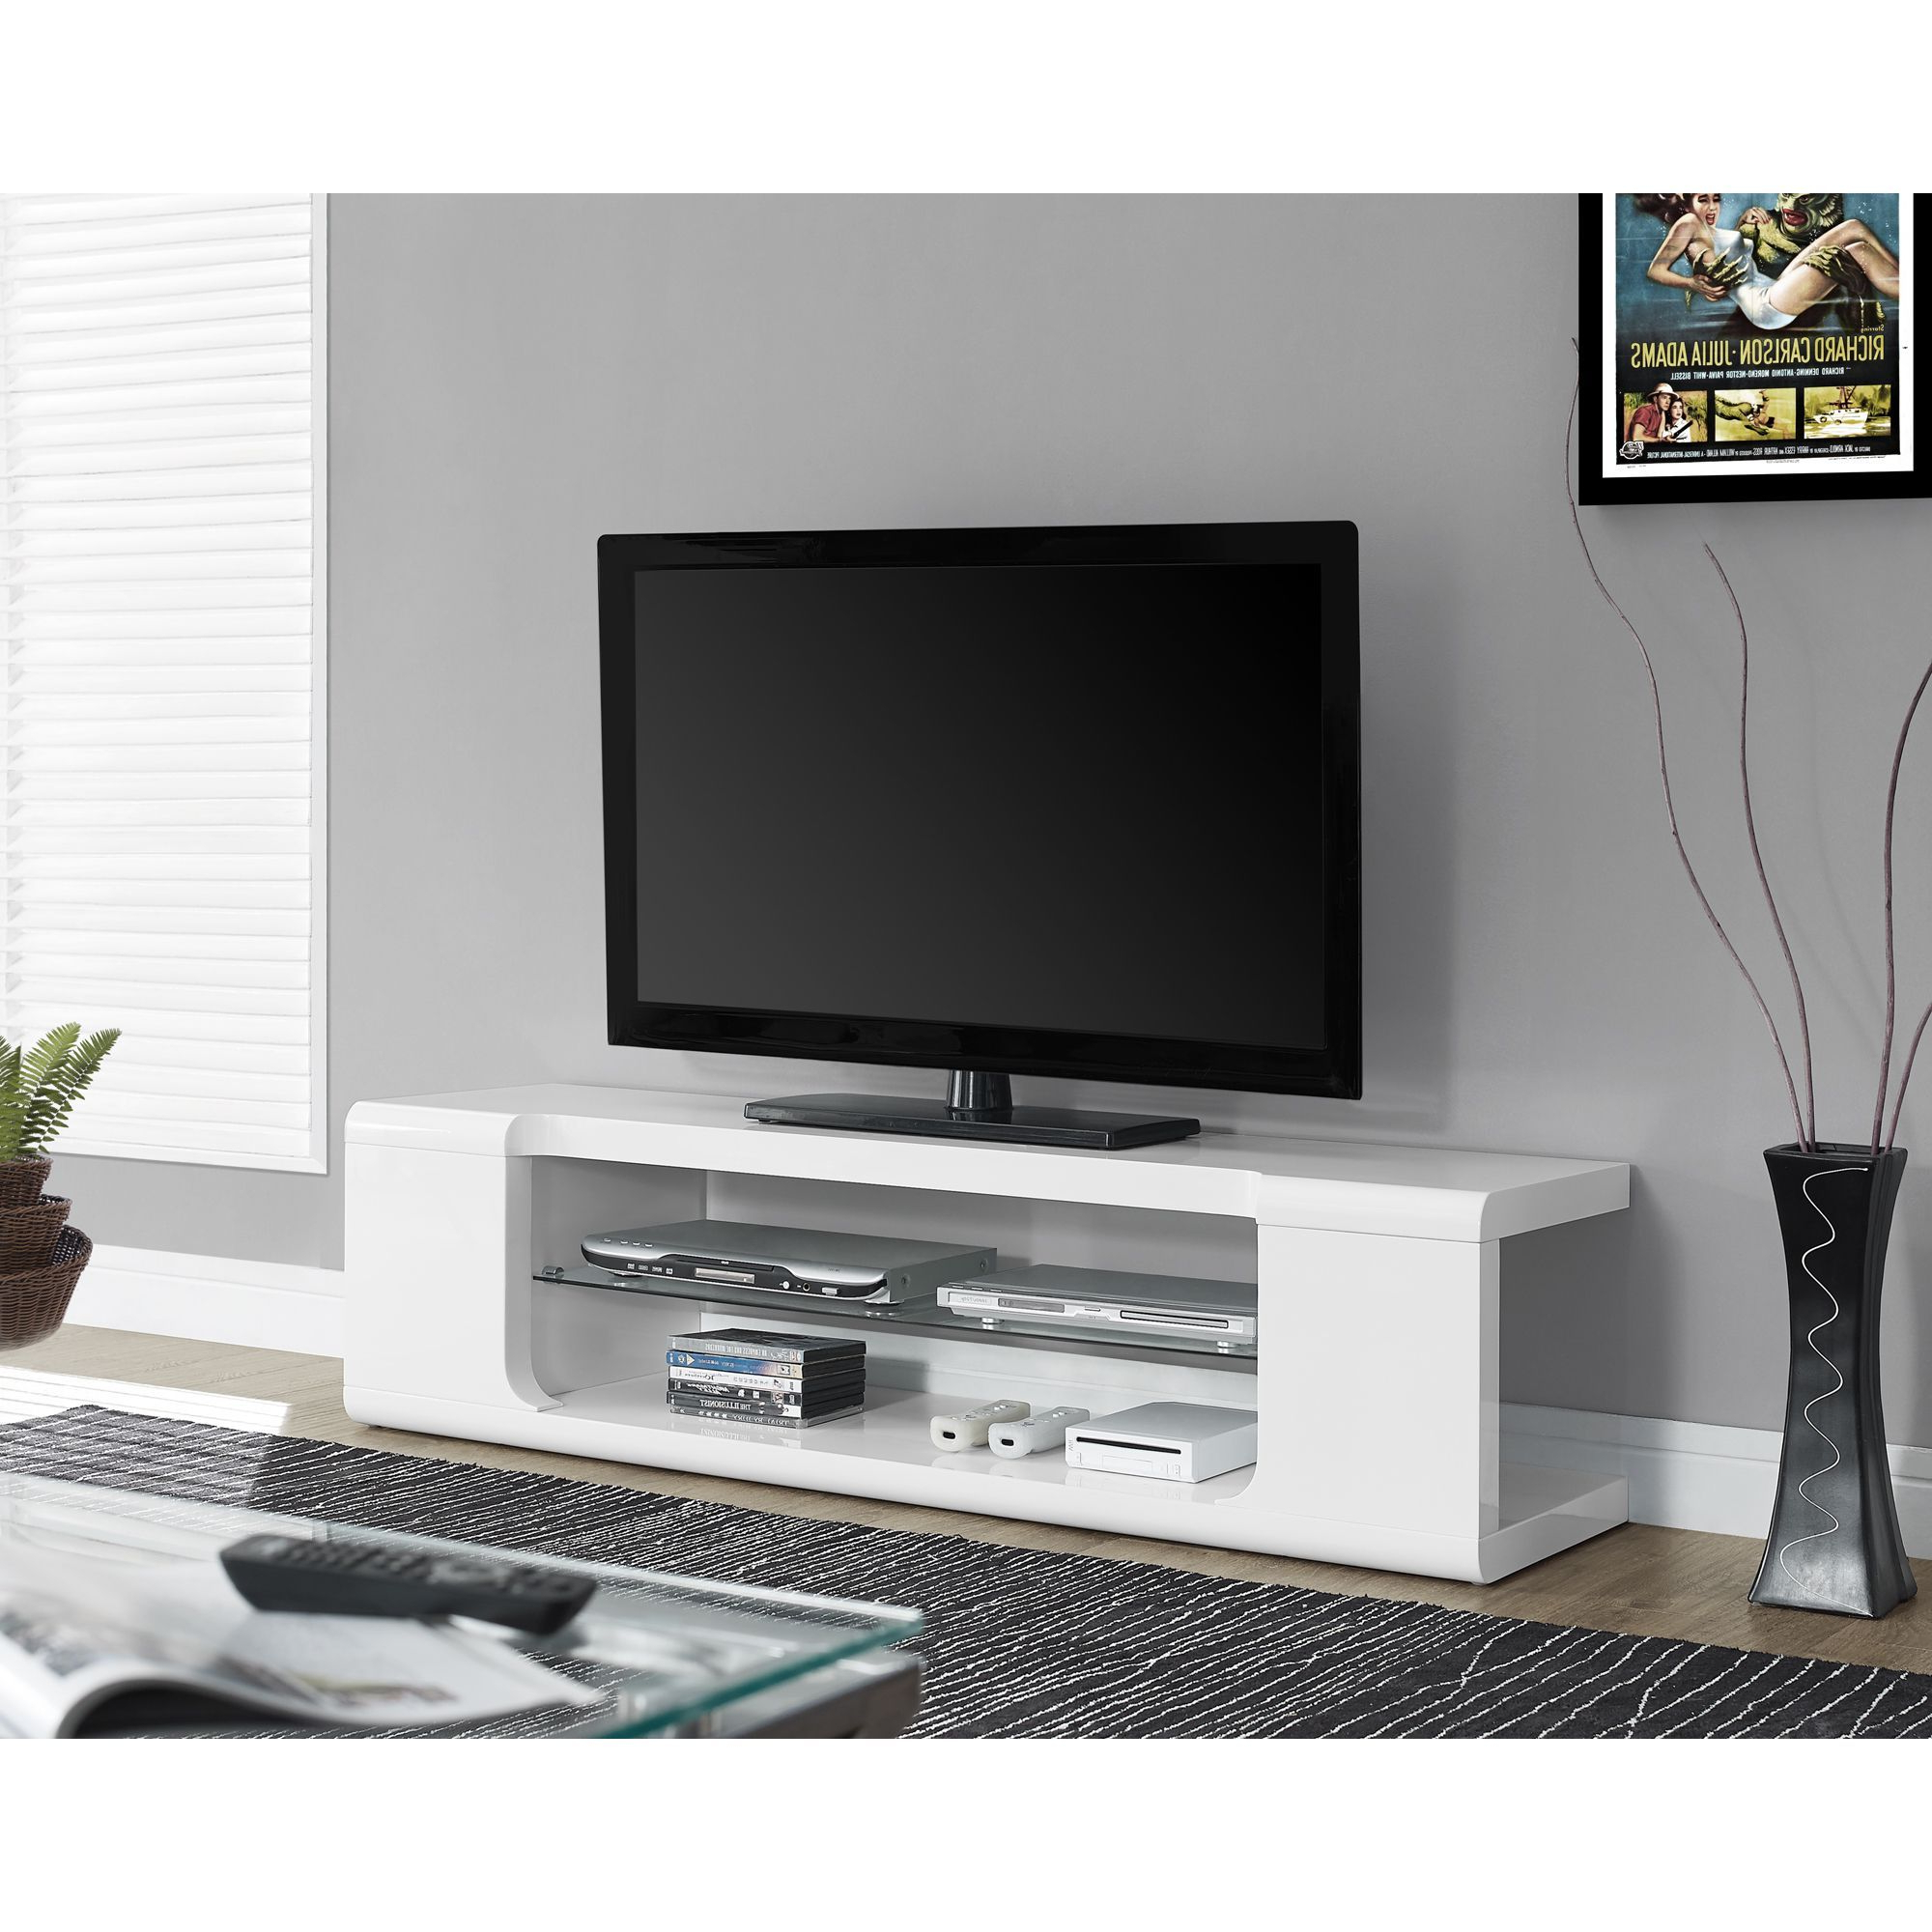 Latest Keep Your Living Space Clutter Free With This Unusual Yet With Unusual Tv Stands (View 9 of 20)